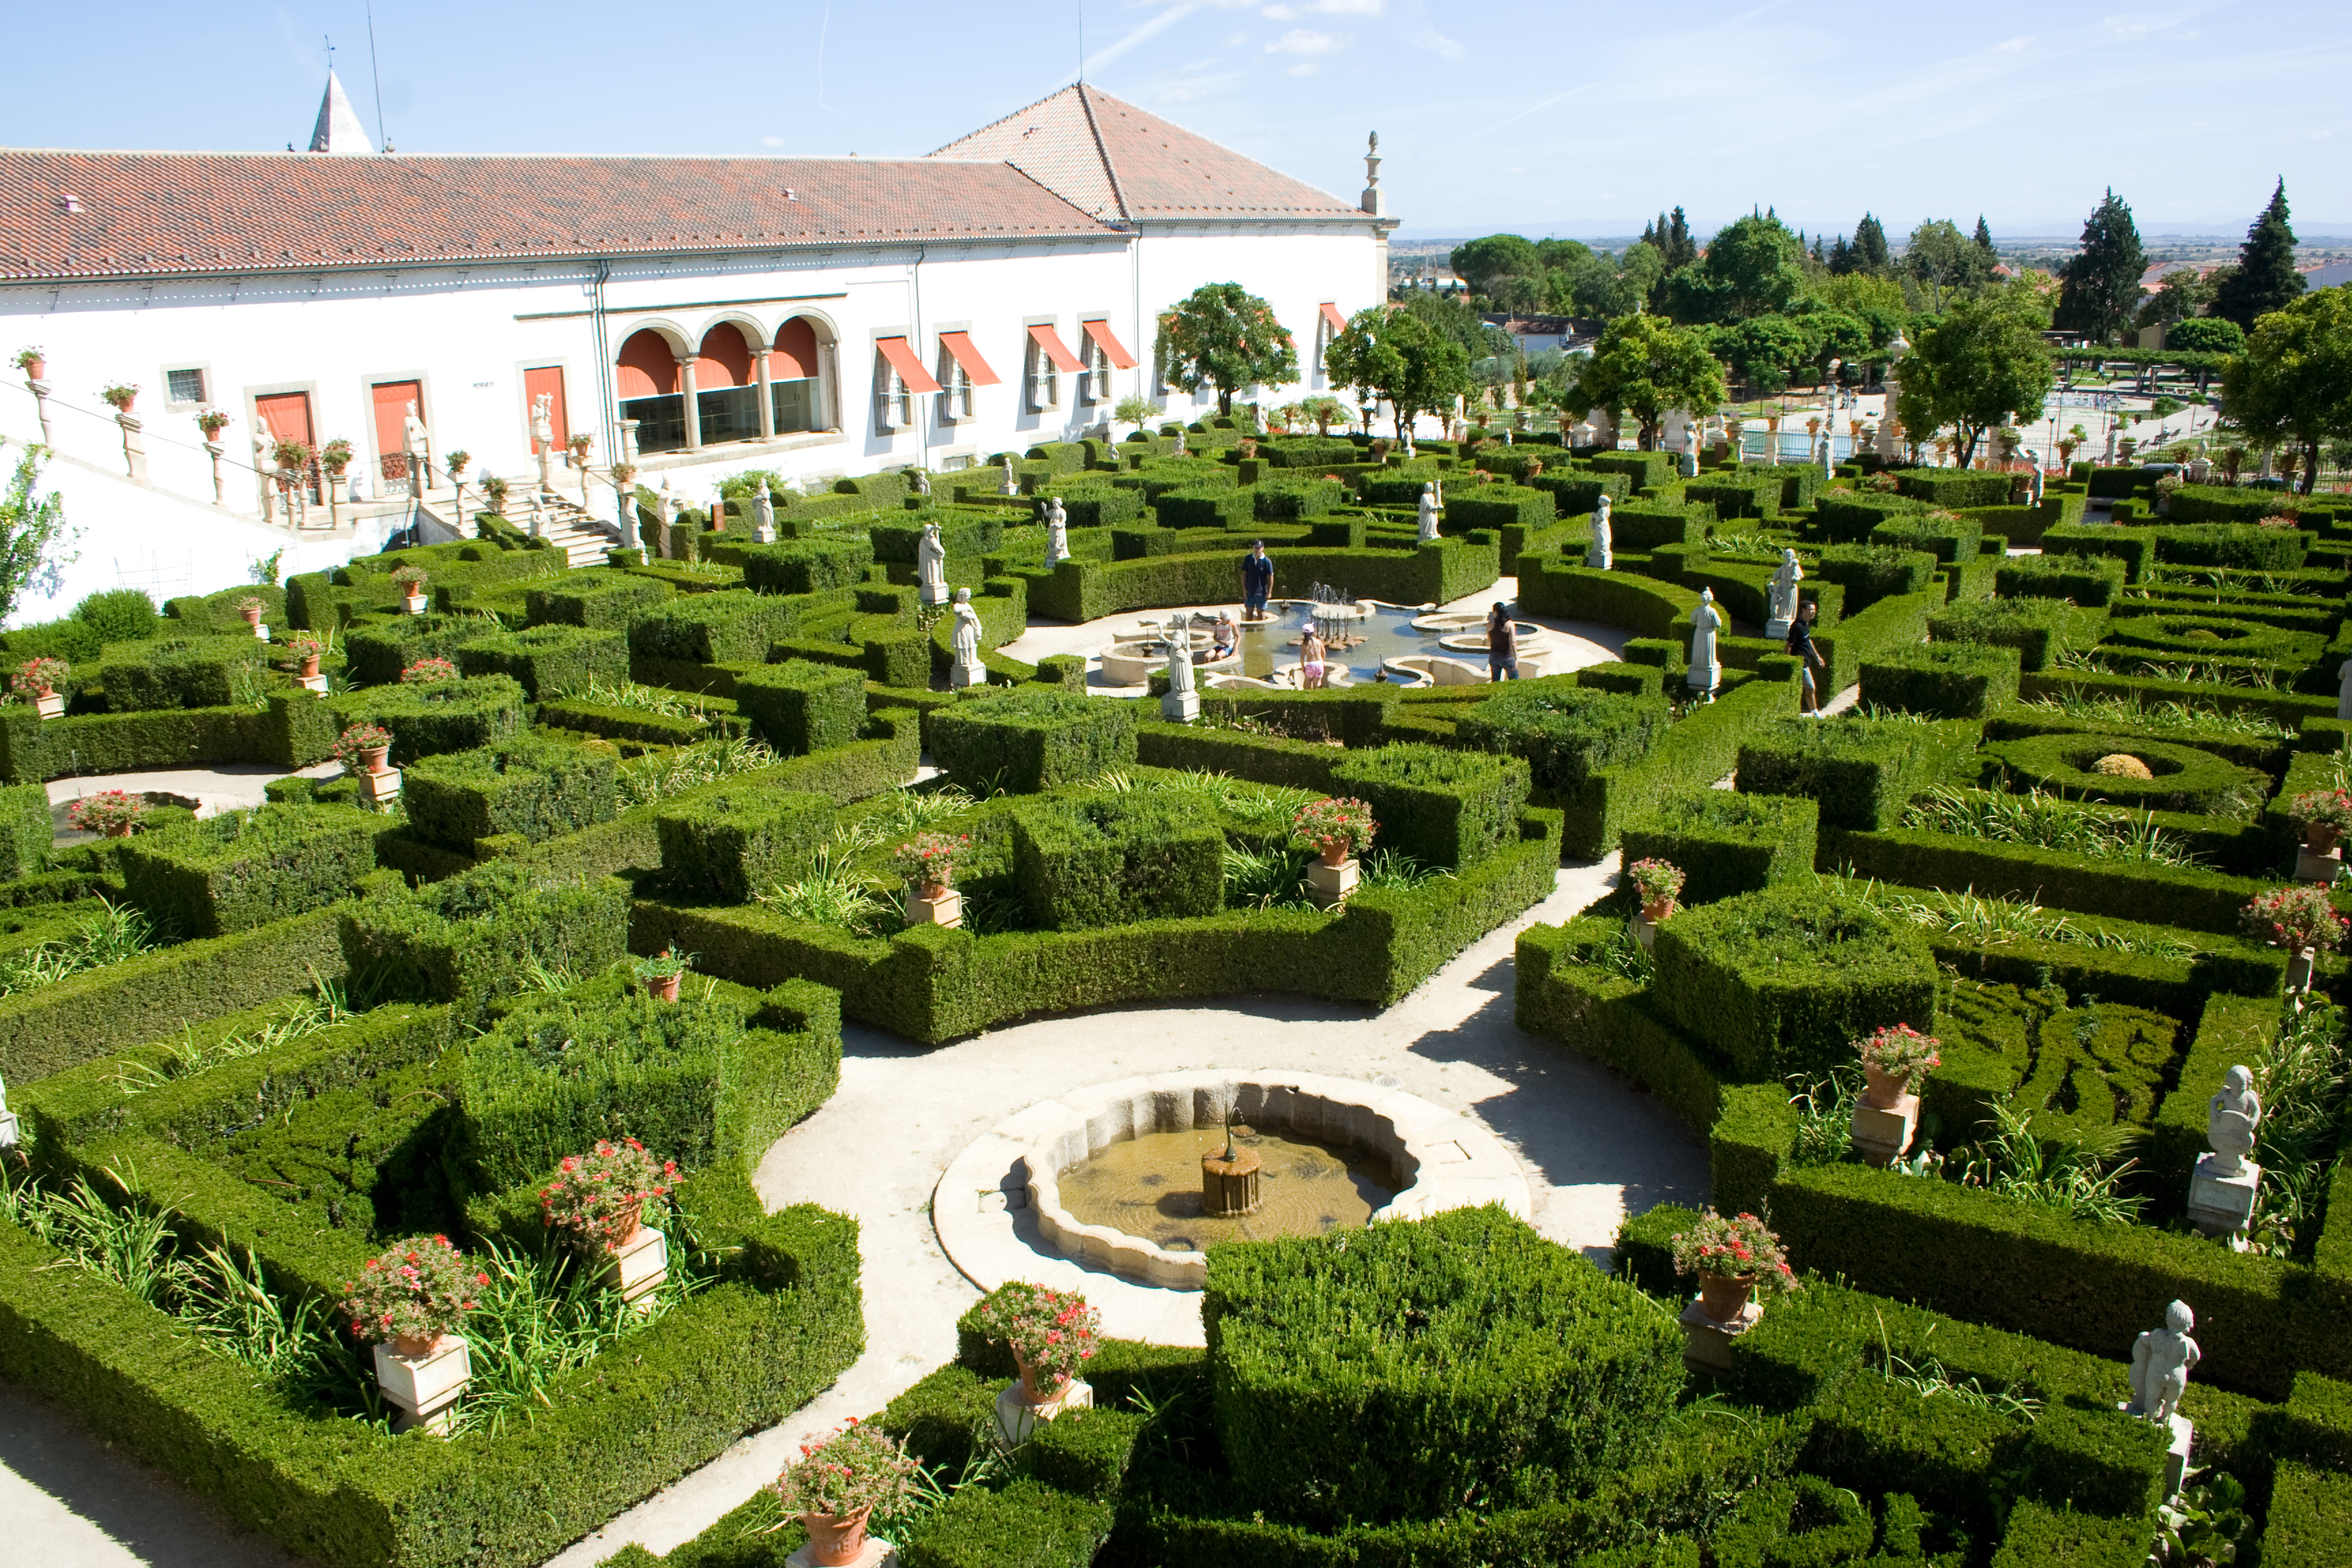 Top 10 most beautiful garden in the world - Castelo Branco Portugal